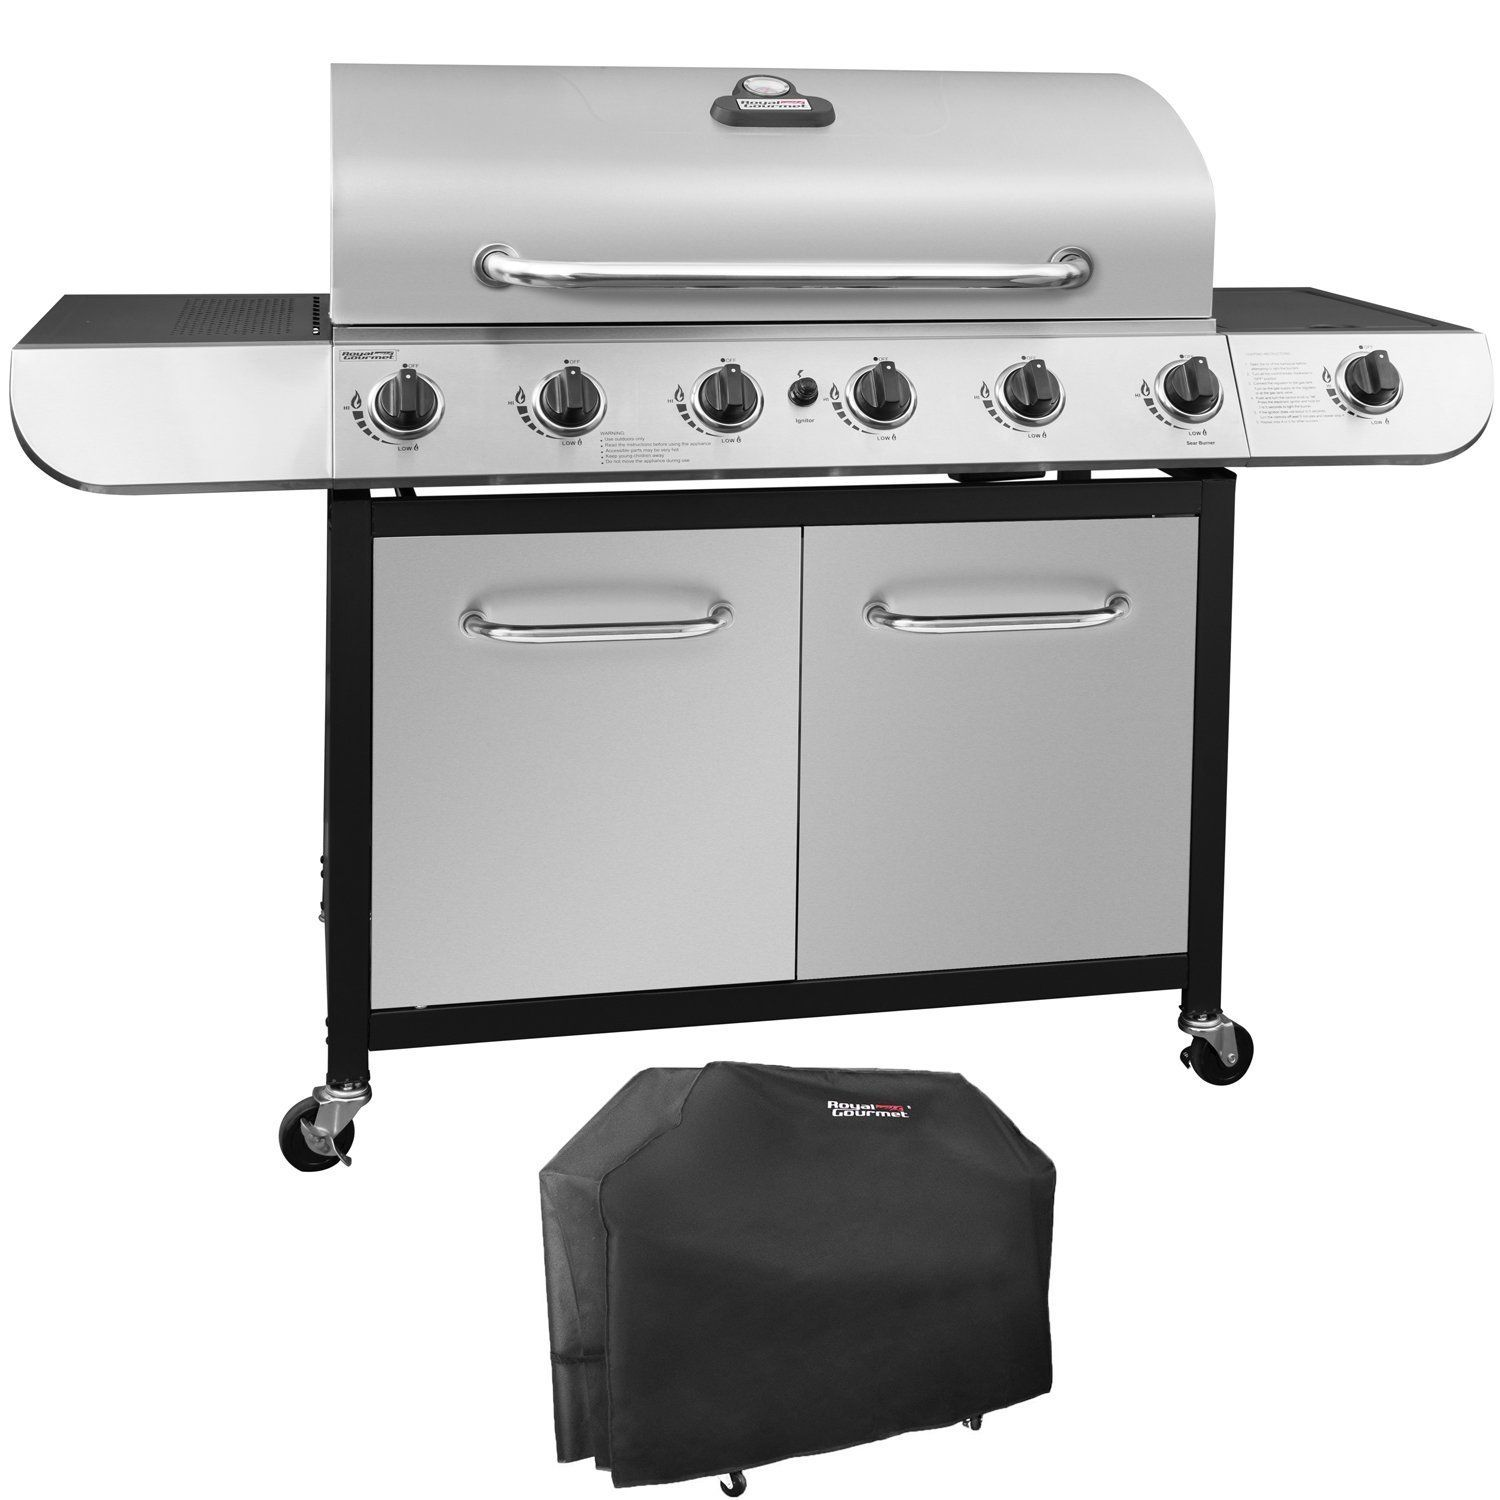 Royal Gourmet Sg6002 Classic 6 Burner Stainless Steel Lp Gas Grill With Sear Burner 71 000 Btu Best Gas Grills Gas Grills On Sale Grilling